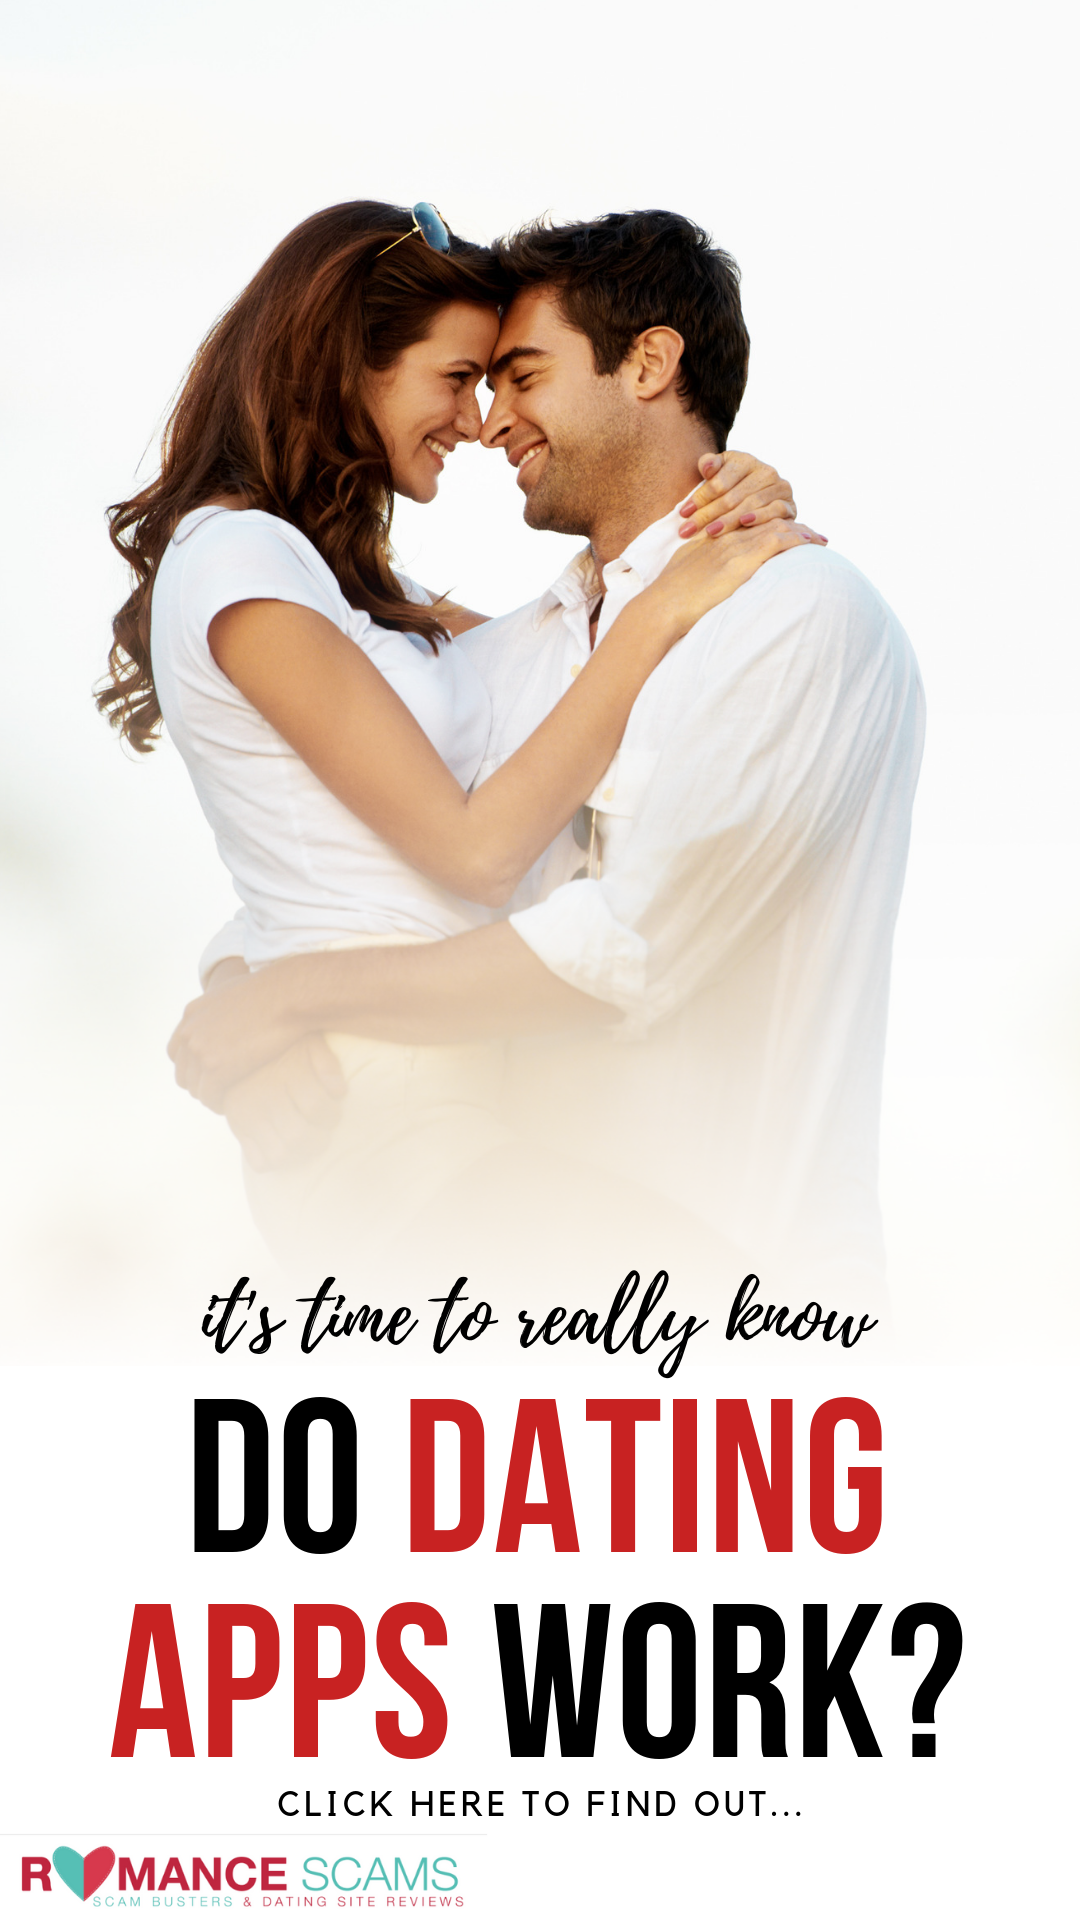 Free dating apps that actually work